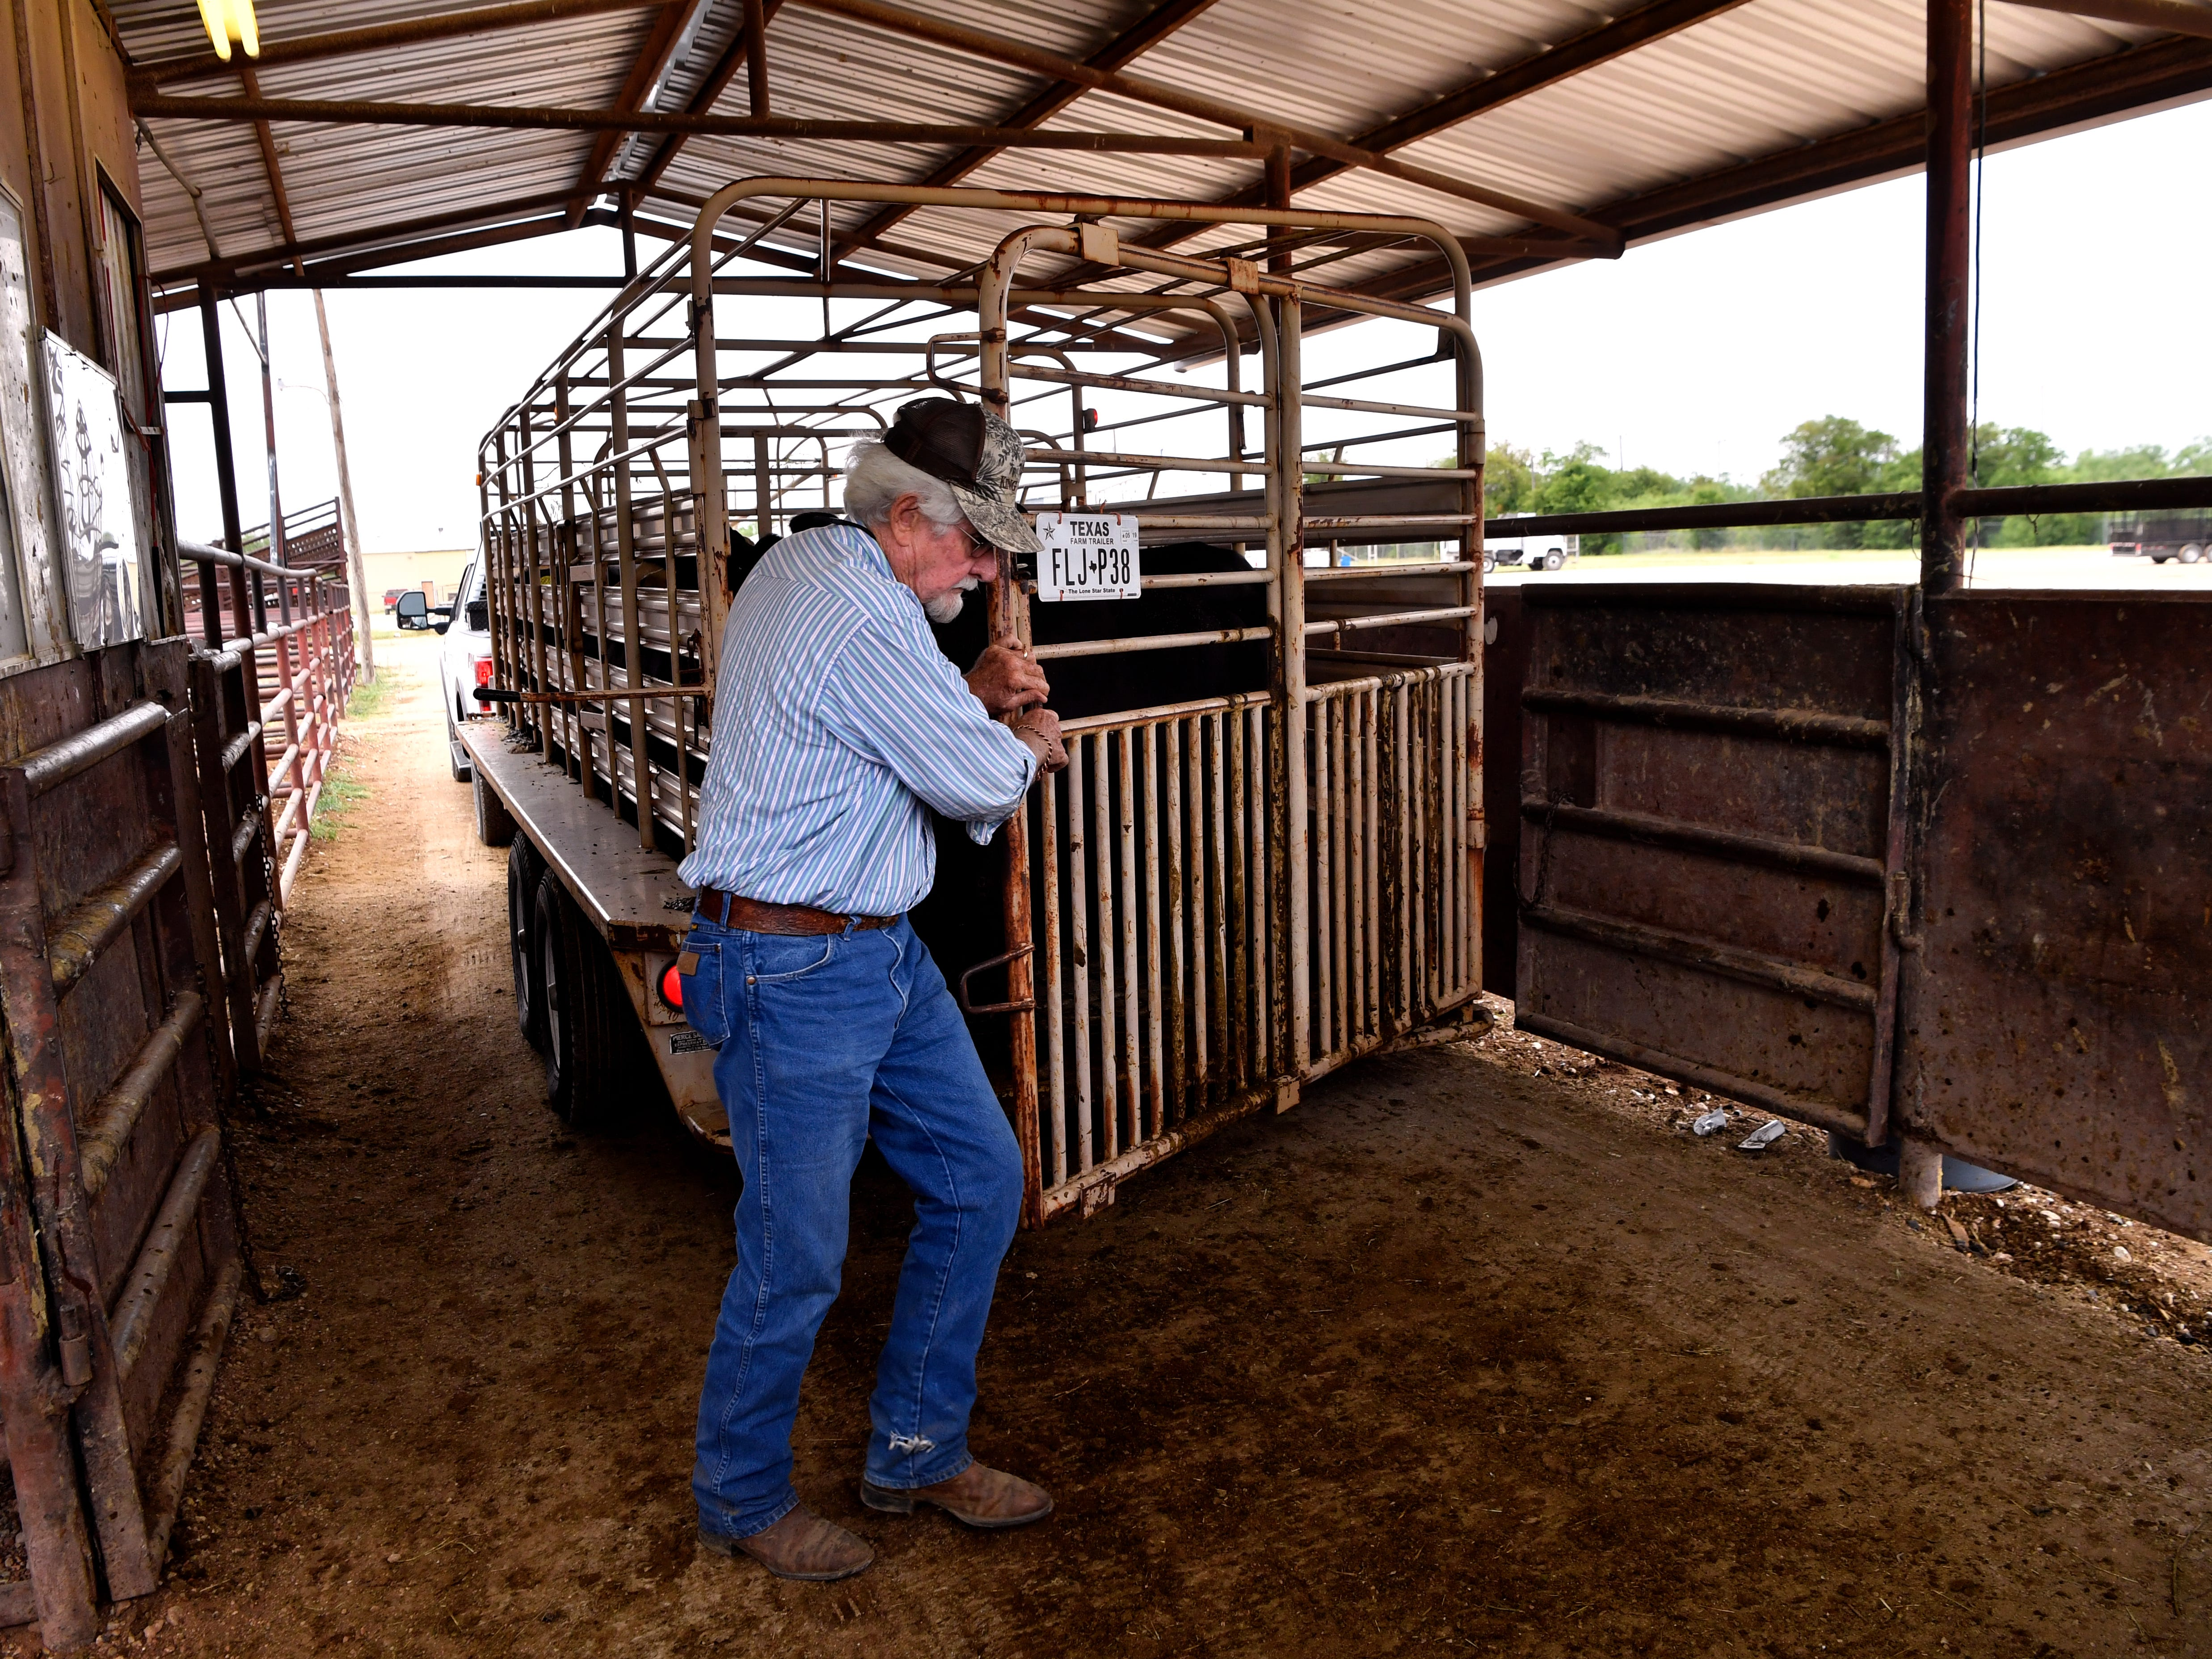 Jerry Key of Throckmorton opens the gate on his trailer to bring out the 18 calves he came to sell at Abilene Livestock Auction Tuesday Sept. 4, 2018. Drought, a lack of forage in pastures, and the high price and scarcity of hay are driving some cattle producers into culling their herds. But many are counting on a wet winter to bring pastures and hay stores back to full strength.